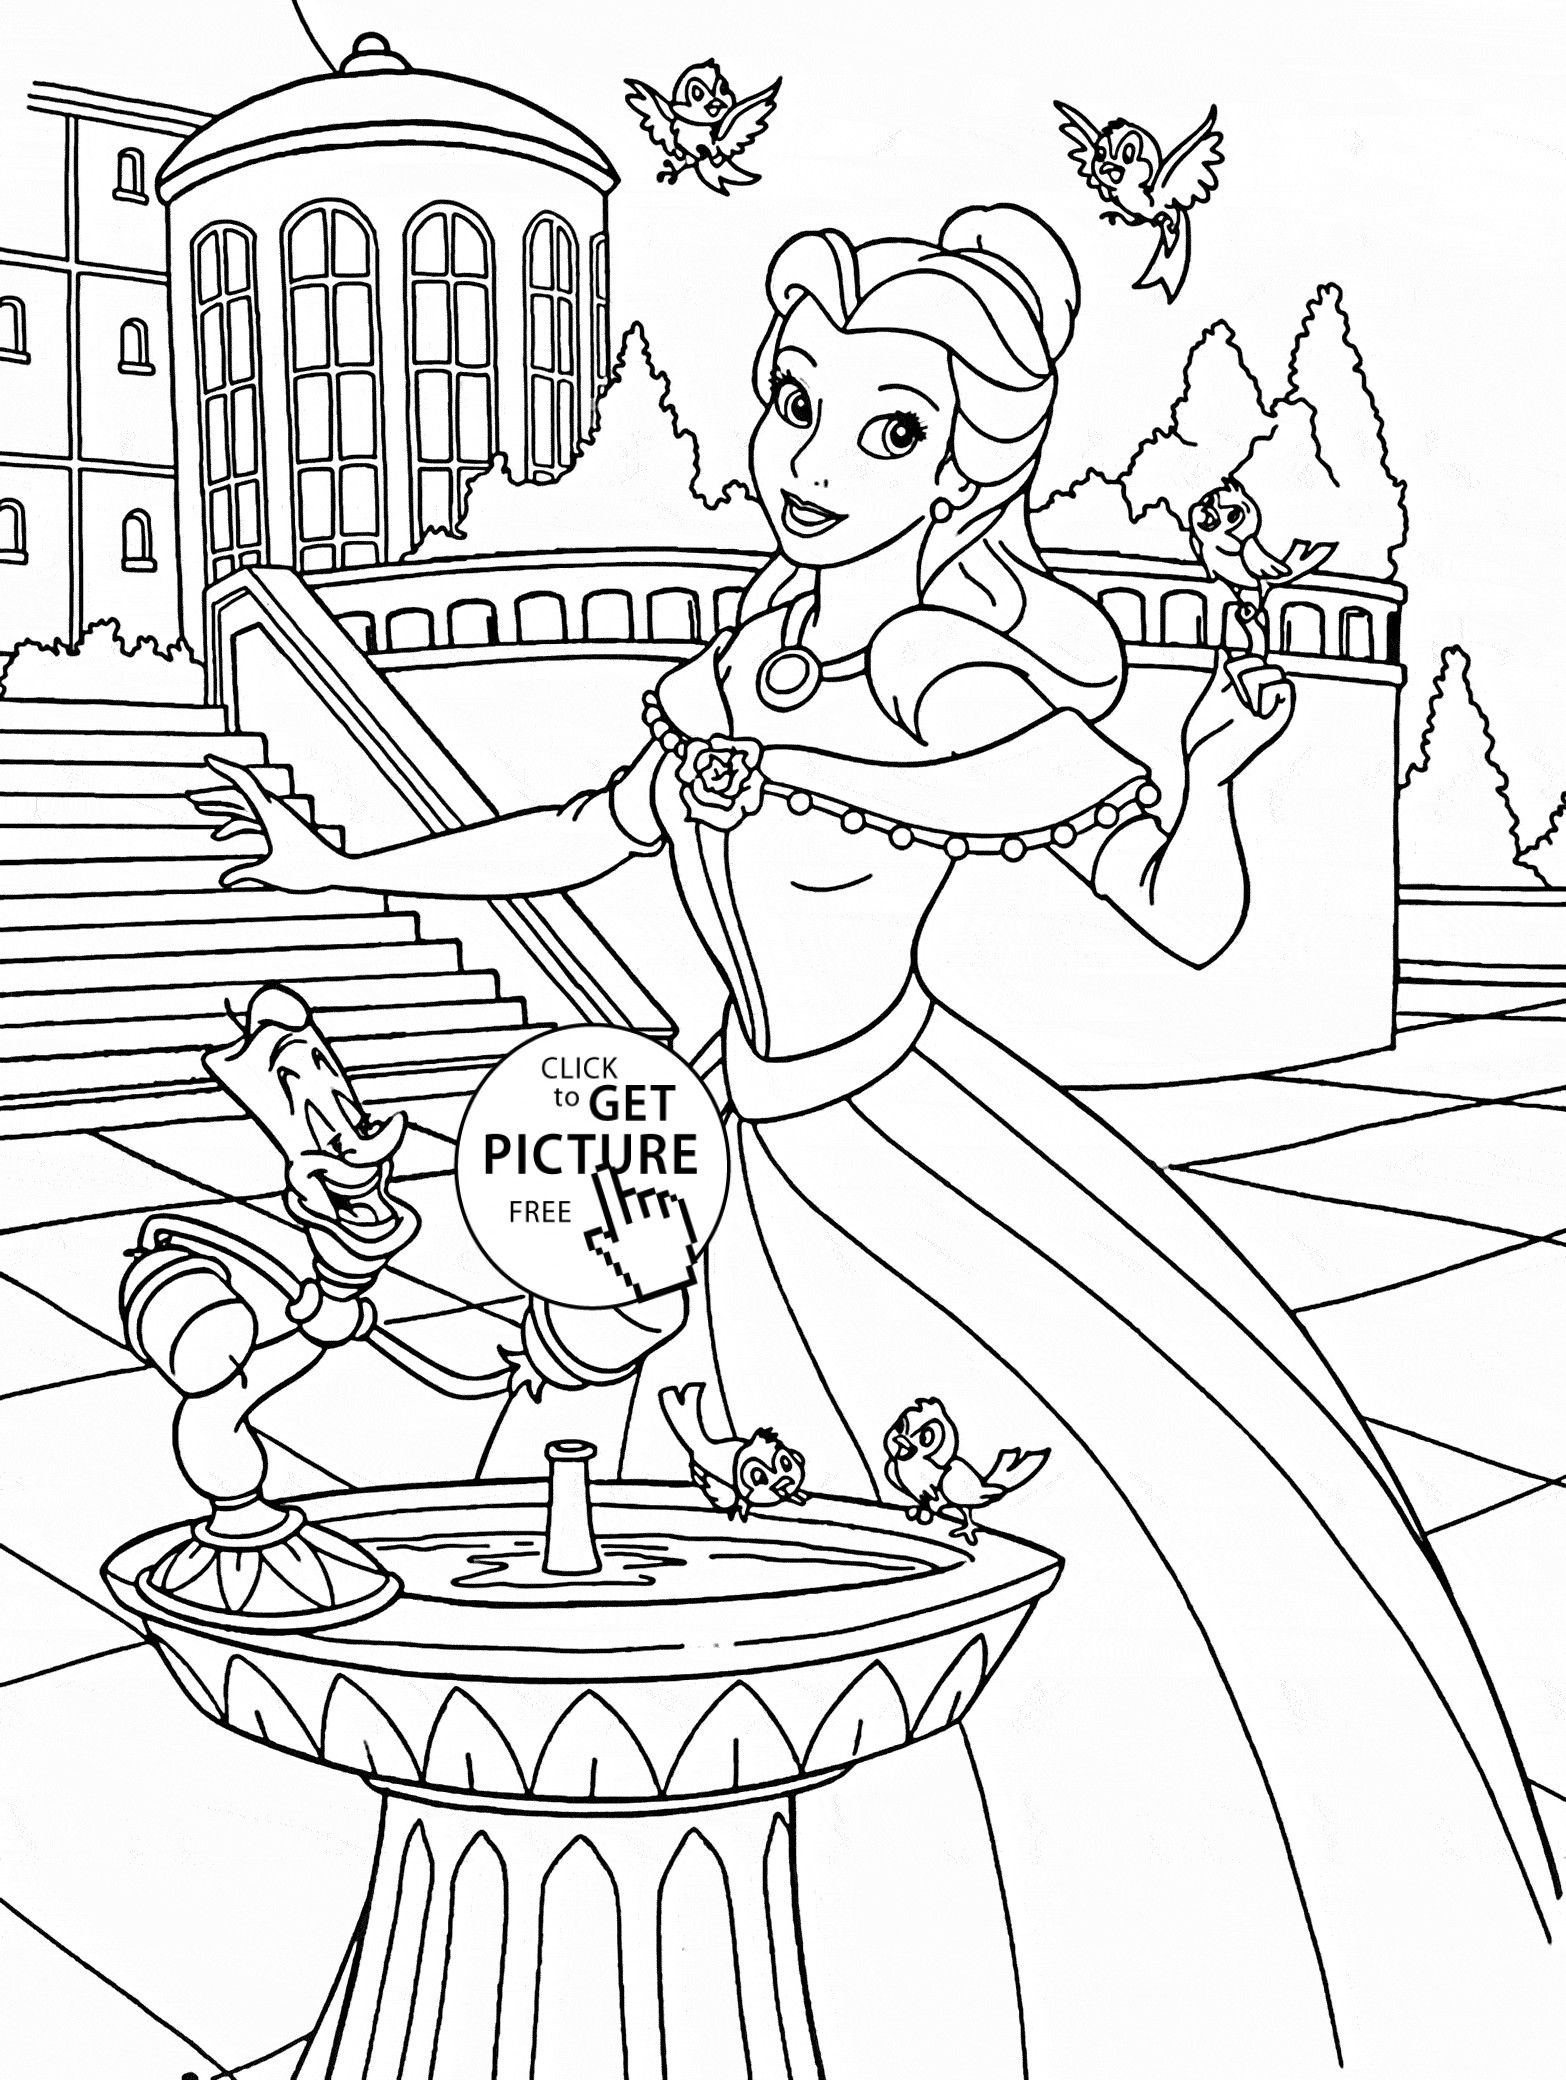 Castle with Princess Coloring Pages – Through the thousands of